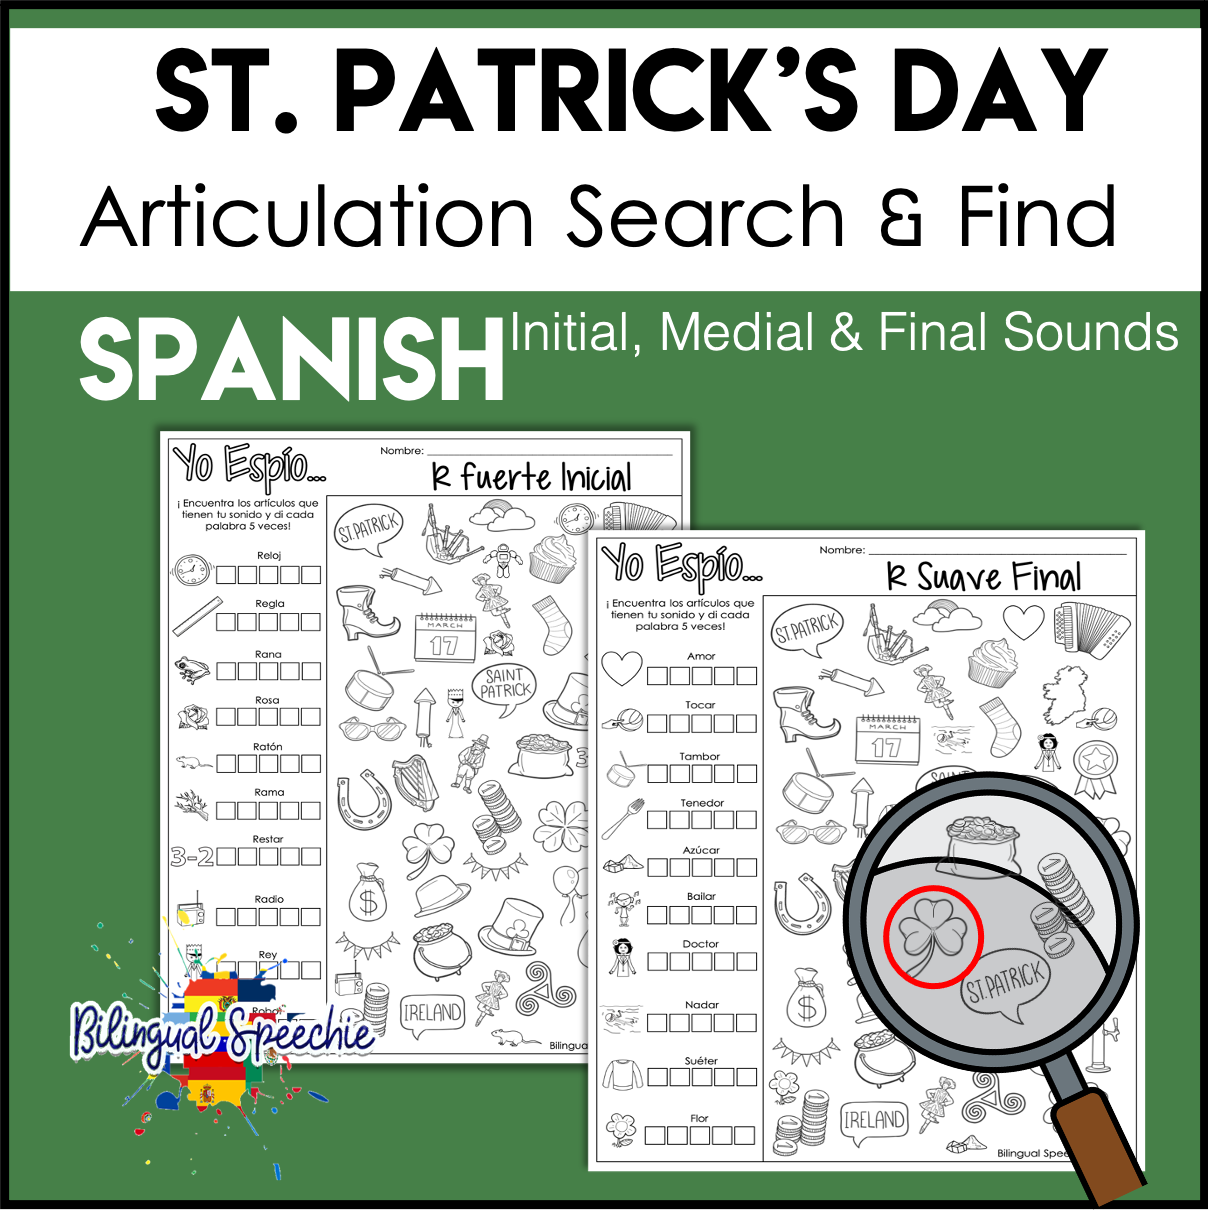 St. Patrick's Day Search & Find Articulation | Spanish